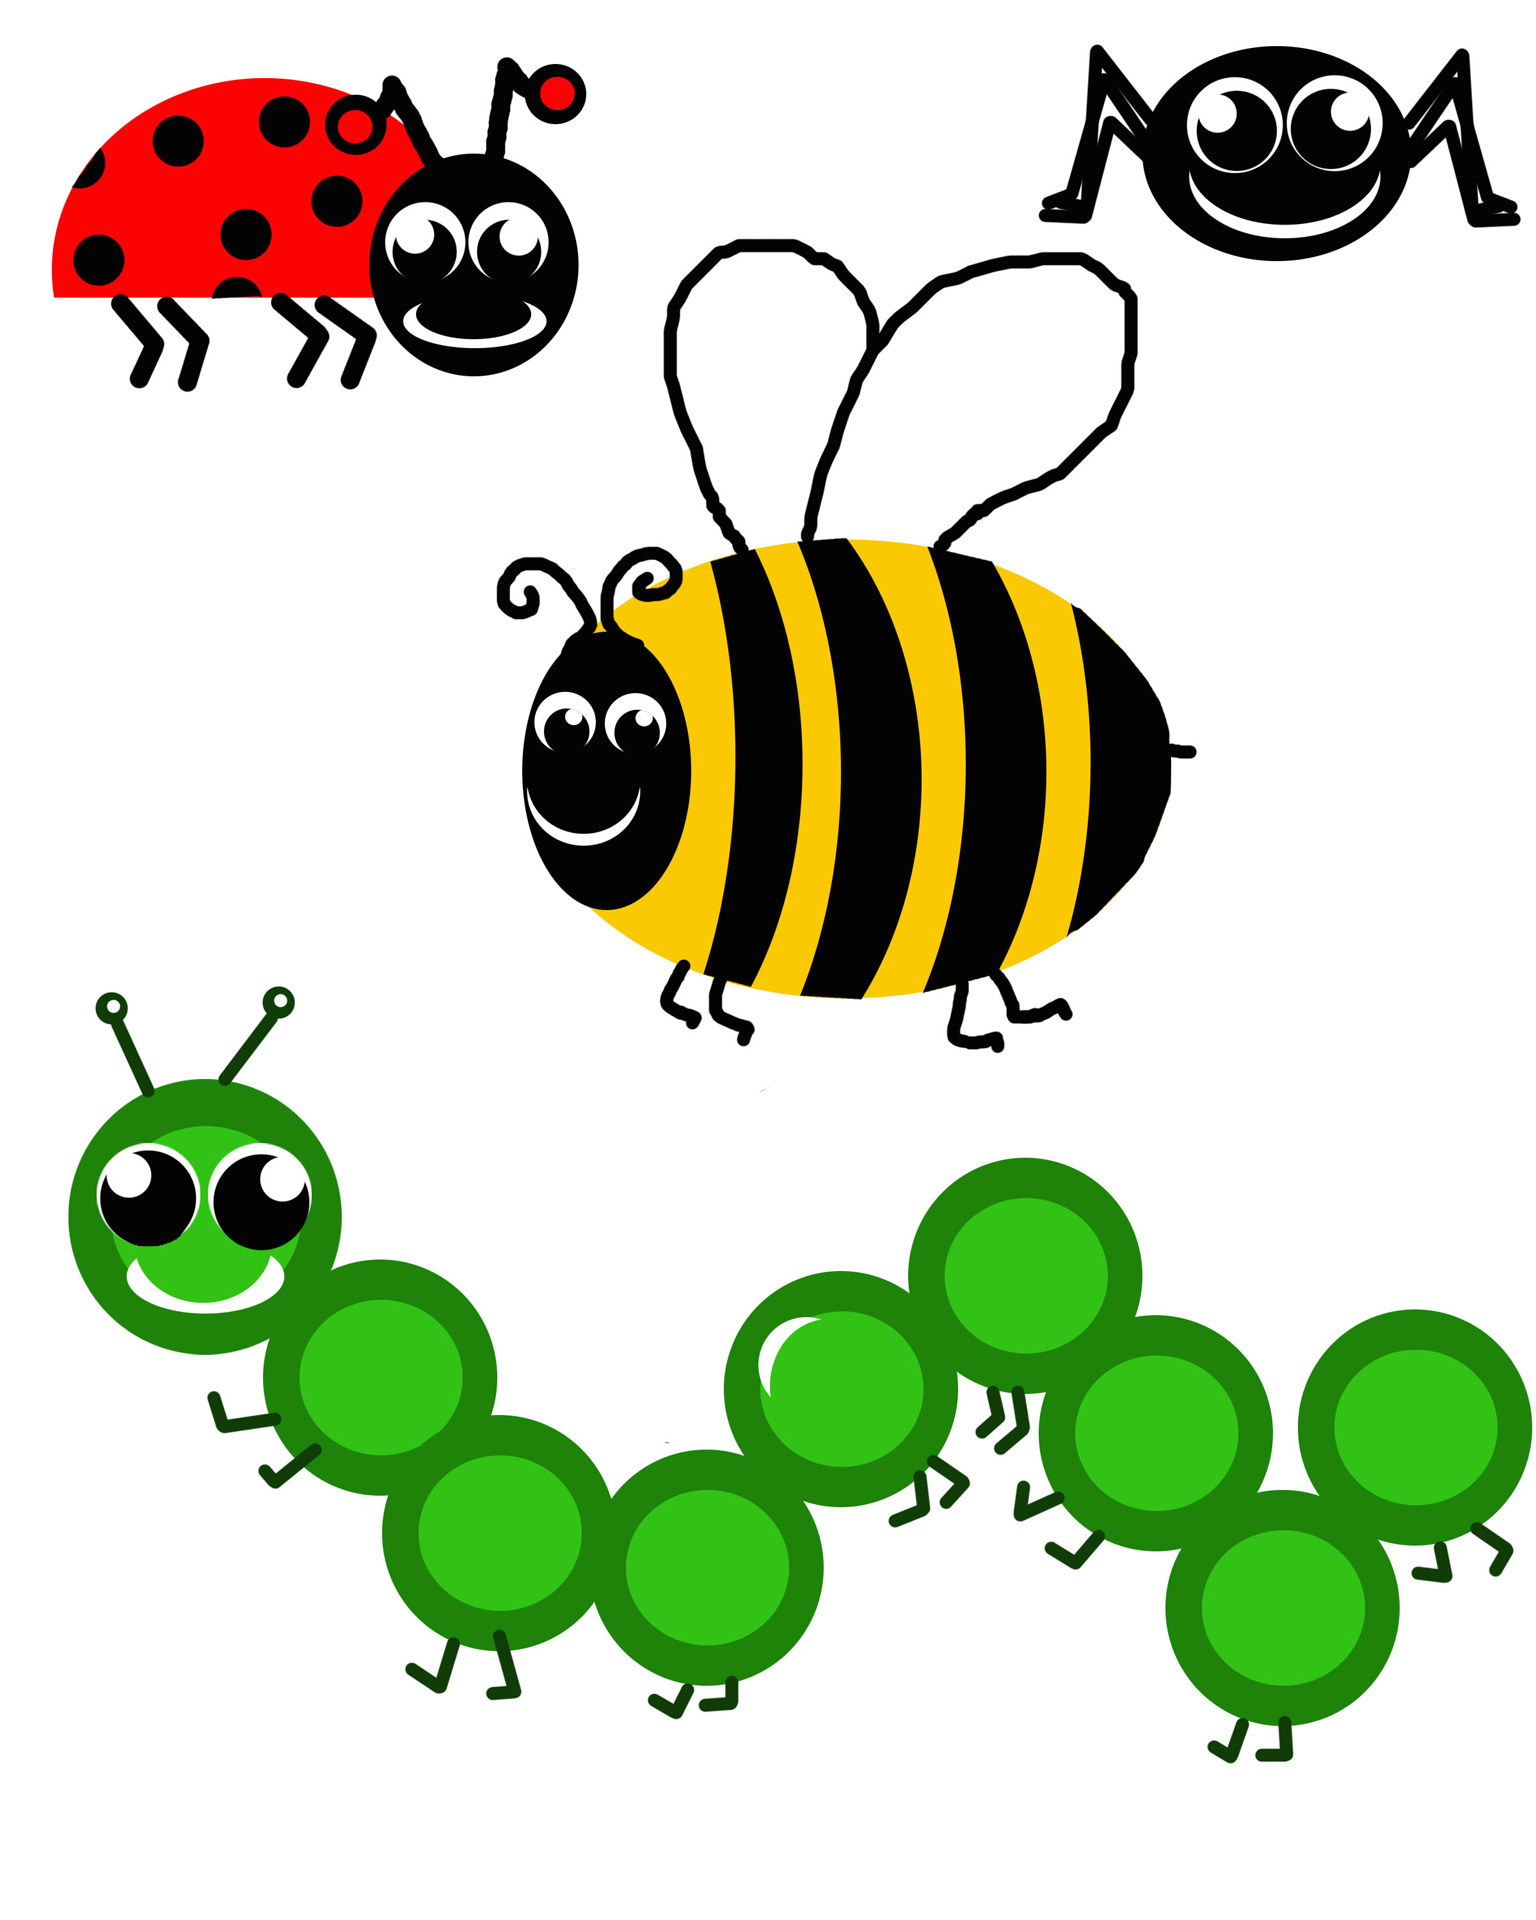 royalty free stock Insect transparent free for. Bugs clipart.